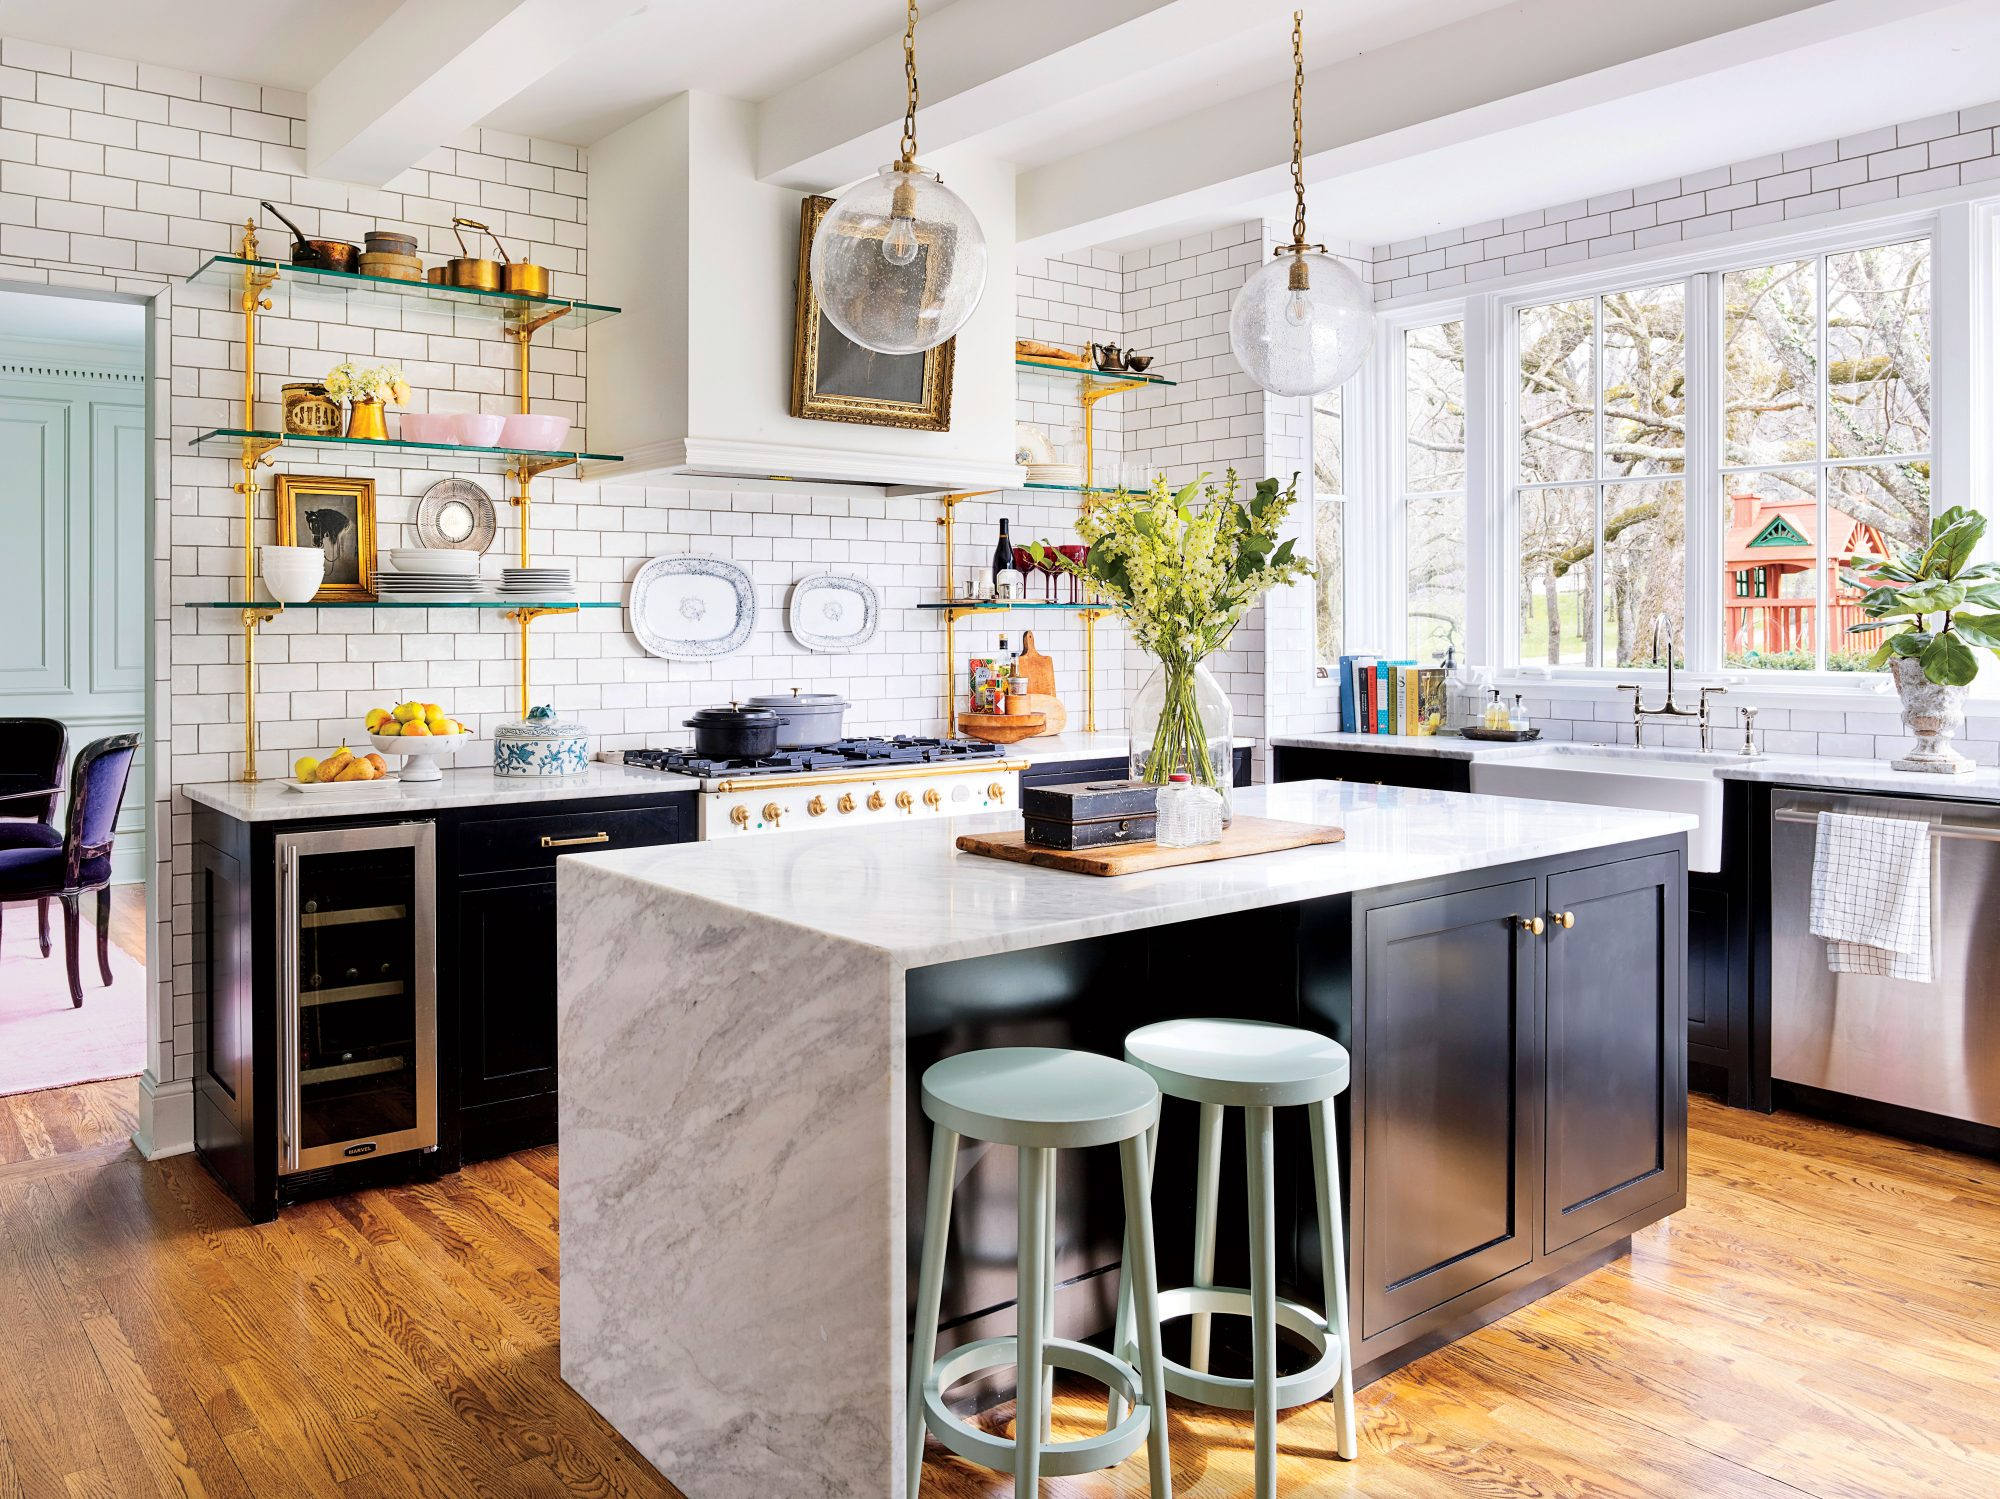 Prepare to Fall In With This White Colonial Revival in ... on colonial floor plans, colonial house plans, colonial landscape plans, colonial kitchen plans, colonial garden plans, colonial building plans, colonial garage plans,